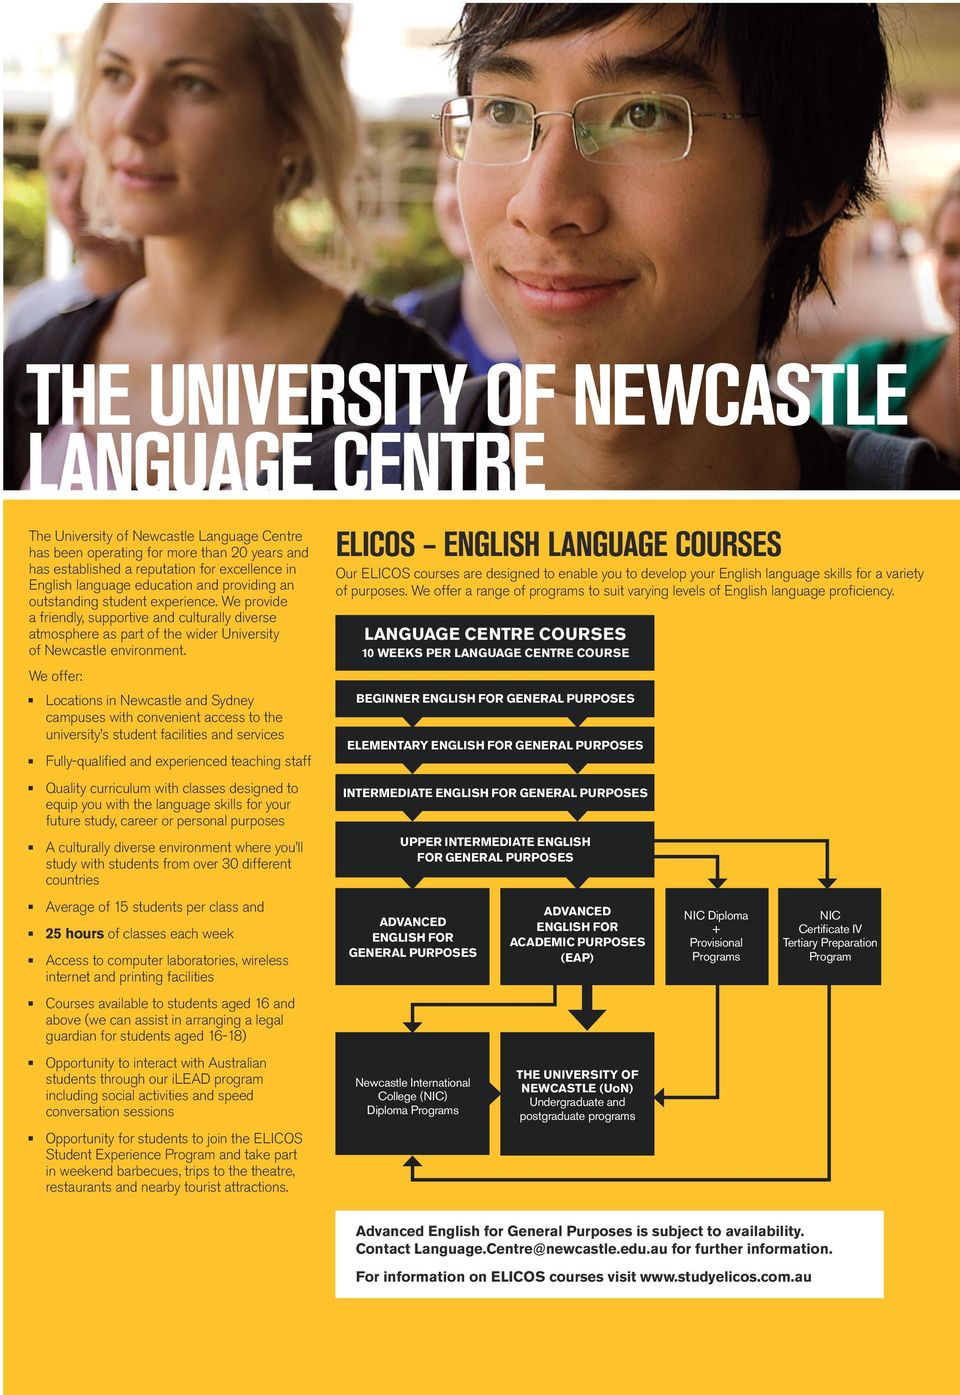 We offer: Locations in Newcastle and Sydney campuses with convenient access to the university s student facilities and services Fully-qualified and experienced teaching staff Quality curriculum with